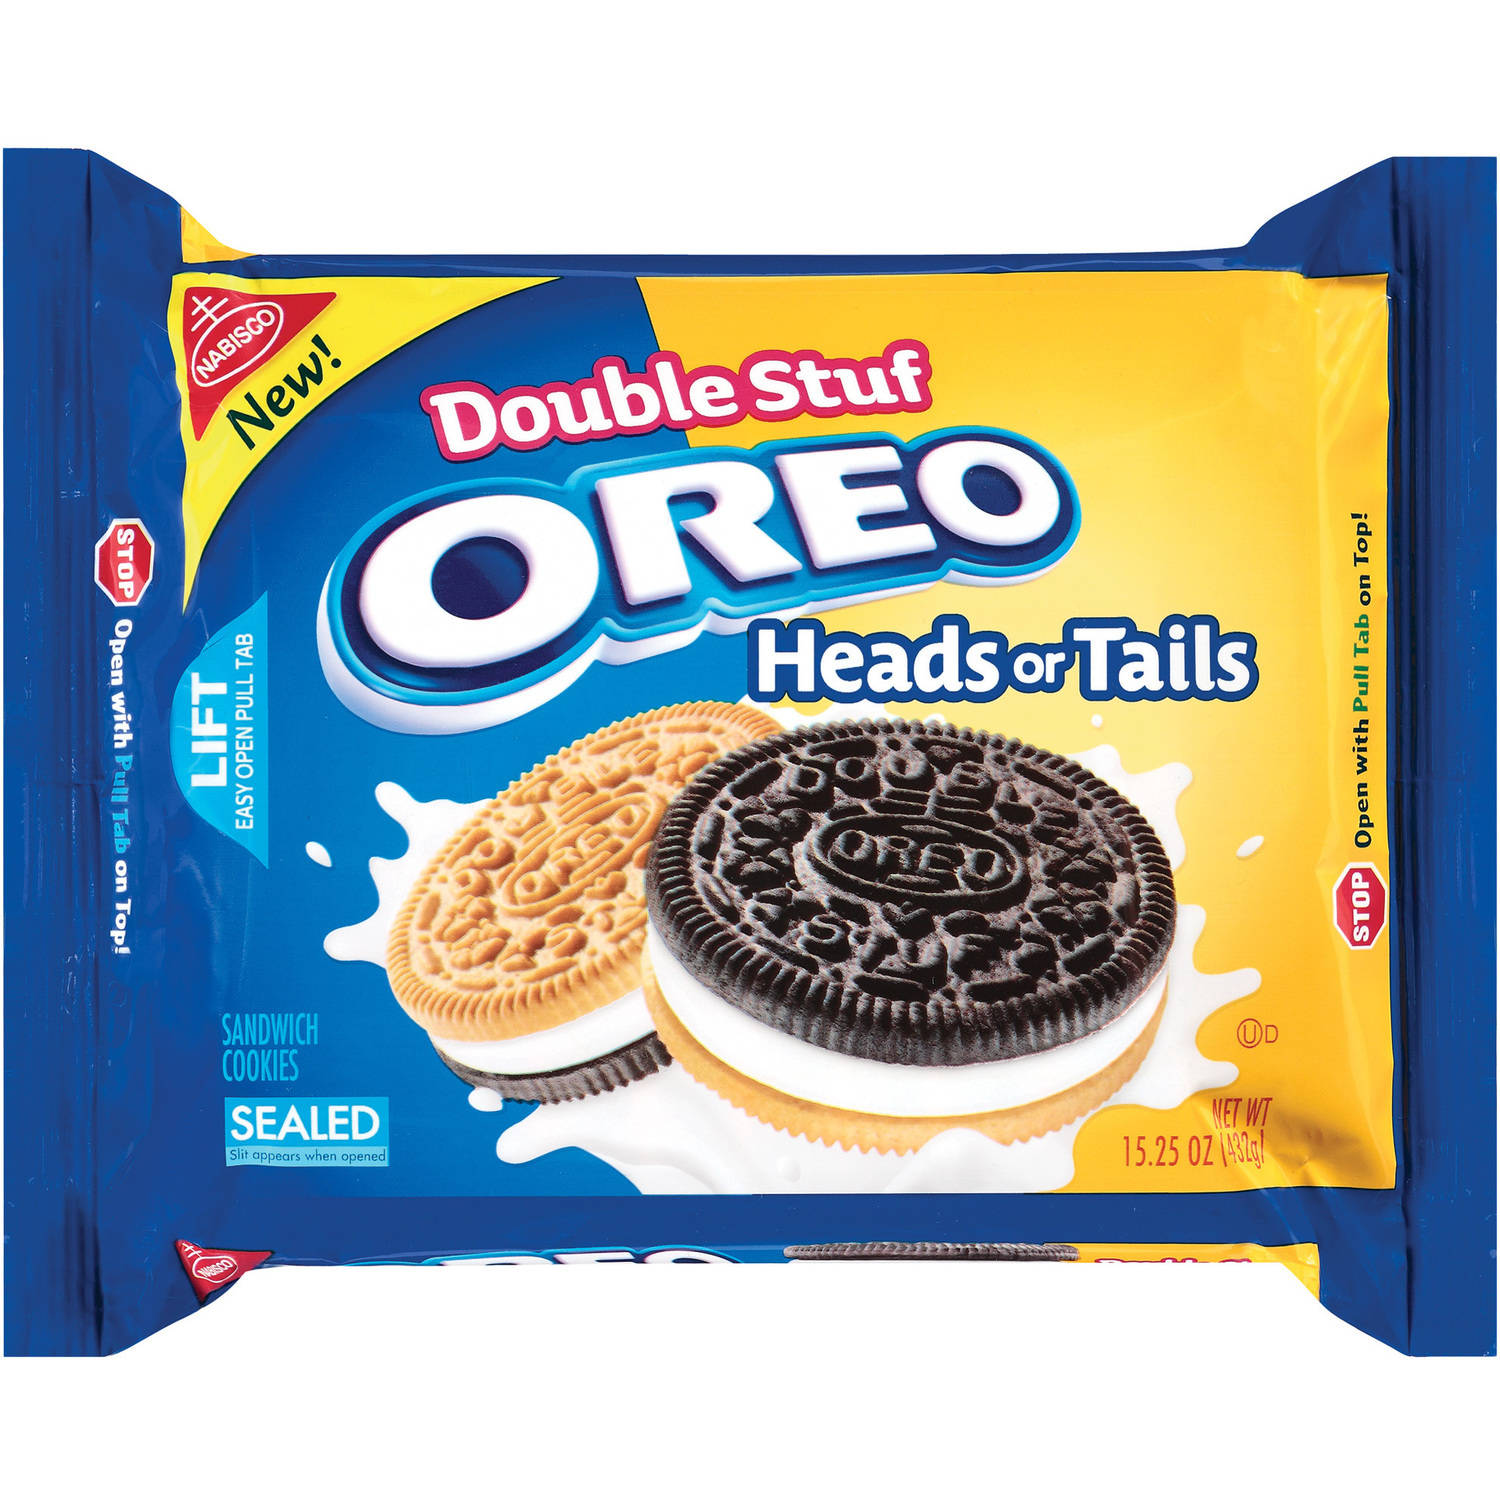 Nabisco Double Stuf Oreo Heads Or Tails Sandwich Cookies, 15.25 oz